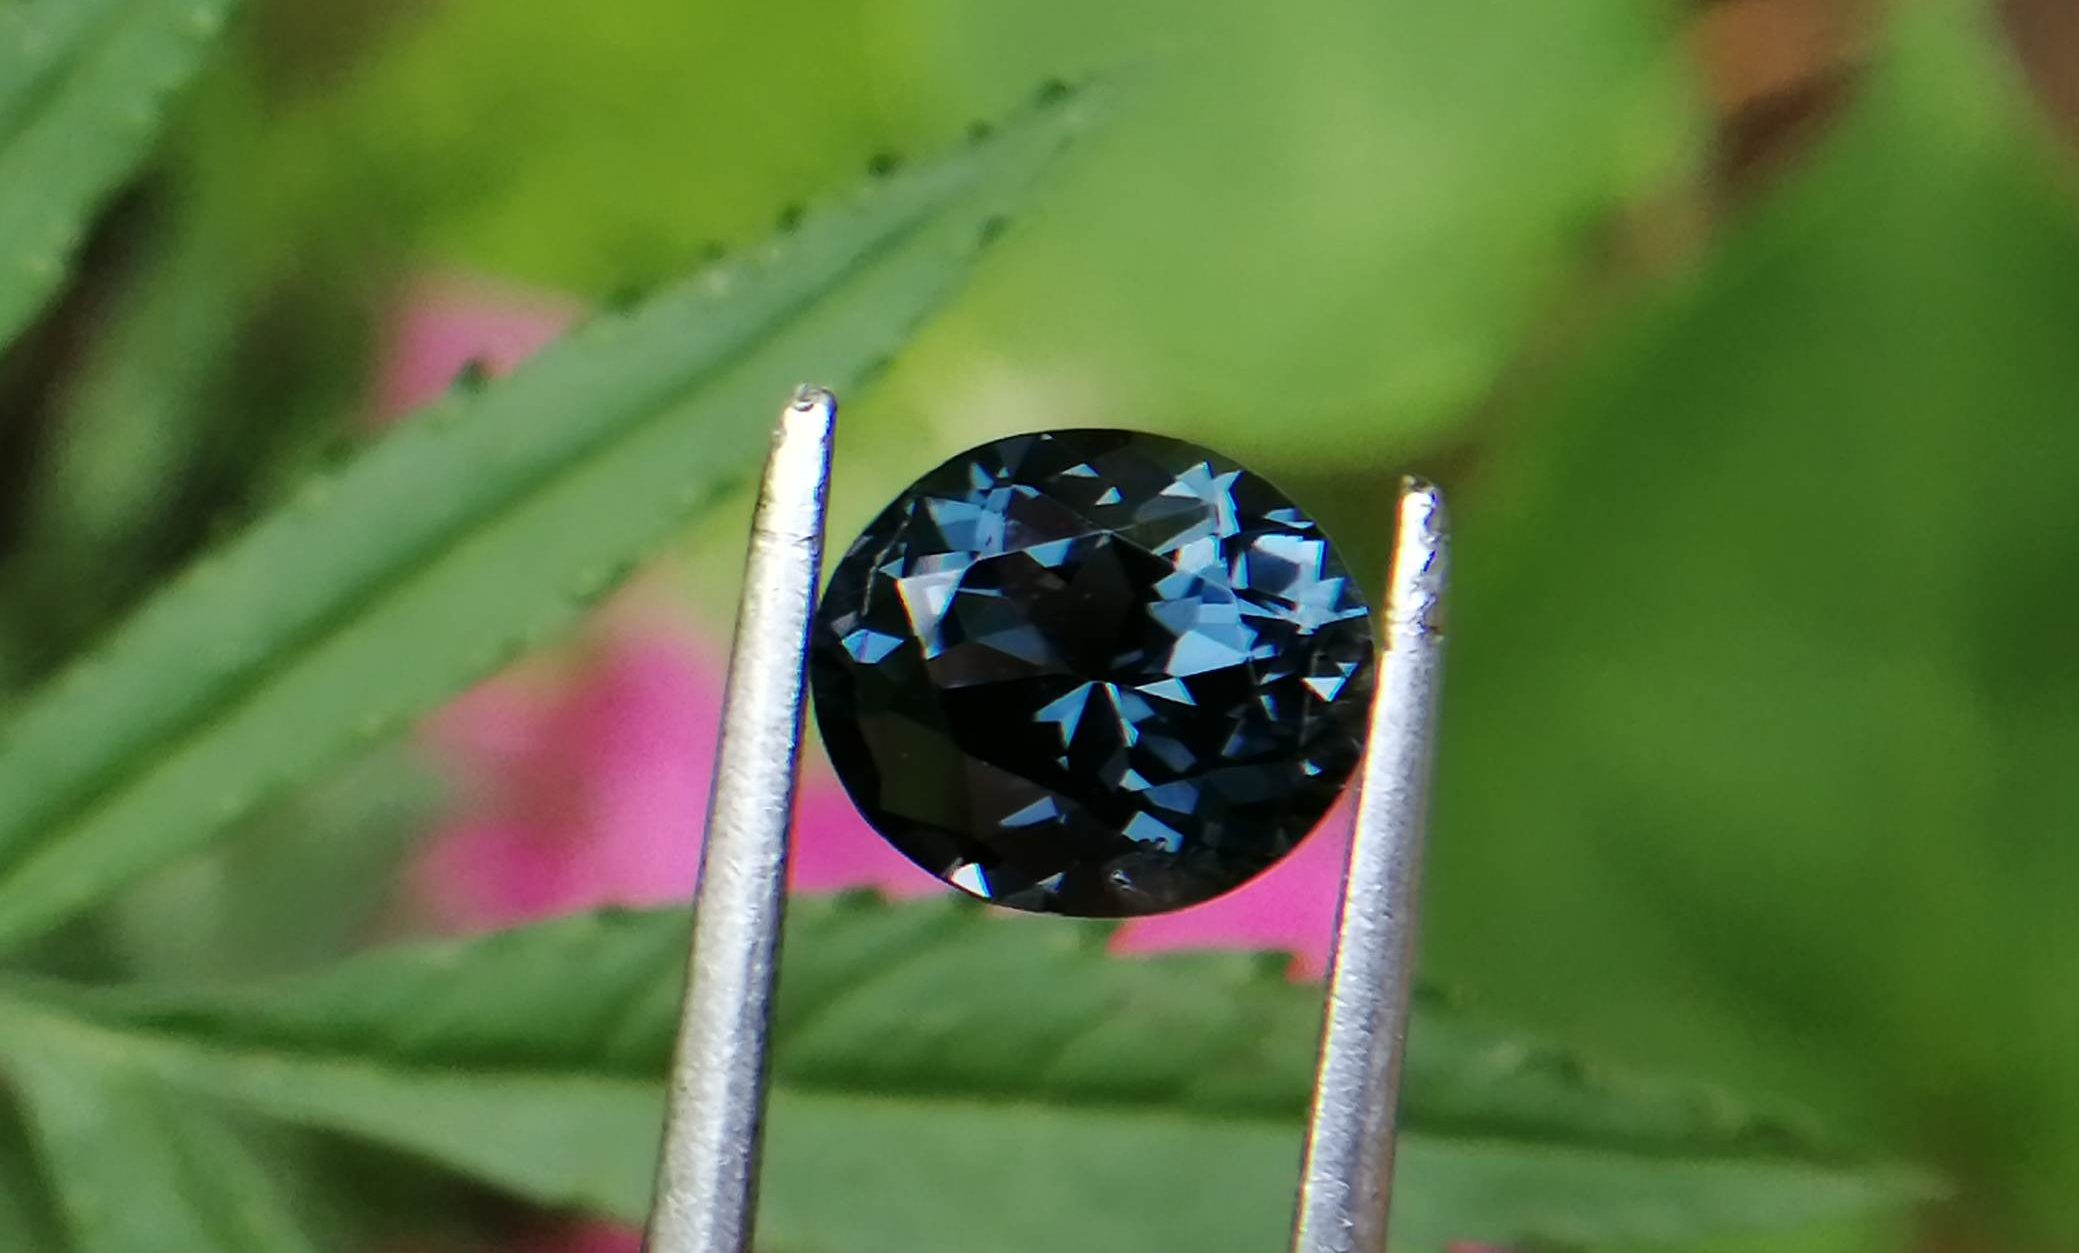 Colour : Blue Shape : Oval Weight : 1.55 Cts Dimension : 8.0 x 6.9 x 4.1 mm Treatment : Unheated Clarity : I Spinel is the magnesium-aluminum member of the larger spinel group of minerals with chemical formula MgAl₂O₄. Spinel is actually a large group of minerals. Gahnite, hercynite, ceylonite, picotite, and galaxite are all part of the spinel group. This oxide mineral is a Cubic crystal system with 7.5–8.0 hardness according to the Mohs hardness scale. Spinels Specific Gravity is depending on the composition of chemicals such as Zn-rich spinel can be as high as 4.40, otherwise, it averages from 3.58 to 3.61. Spinel has many colors such as red, pink, blue, lavender/violet, dark green, brown, black, colorless, gray. Spinel is a single reflective Non-pleochroic gemstone and Anomalous in some blue zincian varieties. It can be found as Opaque, Translucent or transparent. Spinel RI value is n = 1.719 Some red and pink spinels have fluorescence under UV Light. also, Some spinels have magnetism Weak to medium. Natural spinels typically are not enhanced. Spinels are found in Madagascar, Sri Lanka, Vietnam, Myanmar, Tanzania, Kenya, Nigeria, Afghanistan, Albania, Algeria, Atlantic Ocean, Australia, Belgium, Bolivia, Brazil, Cambodia, Canada. Spinel has long been found in the gemstone-bearing gravel of Sri Lanka. Since 2000 in several locations around the world have been discovered spinels with unusual vivid colors. when the mineral is pure, it's colorless. That's called allochromatic gemstones. Als, Spinels are found with 4-rayed stars and 6-rayed stars. Some spinels are found with a color-changing effect such as Blue to violet, Grayish-blue to reddish-violet and some stones from Sri Lanka change from violet to reddish violet, due to the presence of Fe, Cr, and V. Blue Spinel is a very special gemstone because it is one of the few that occur naturally. The blue Spinel is colored from the impurity of Cobalt in the crystal lattice. High Color saturation in blue Spinels are alw